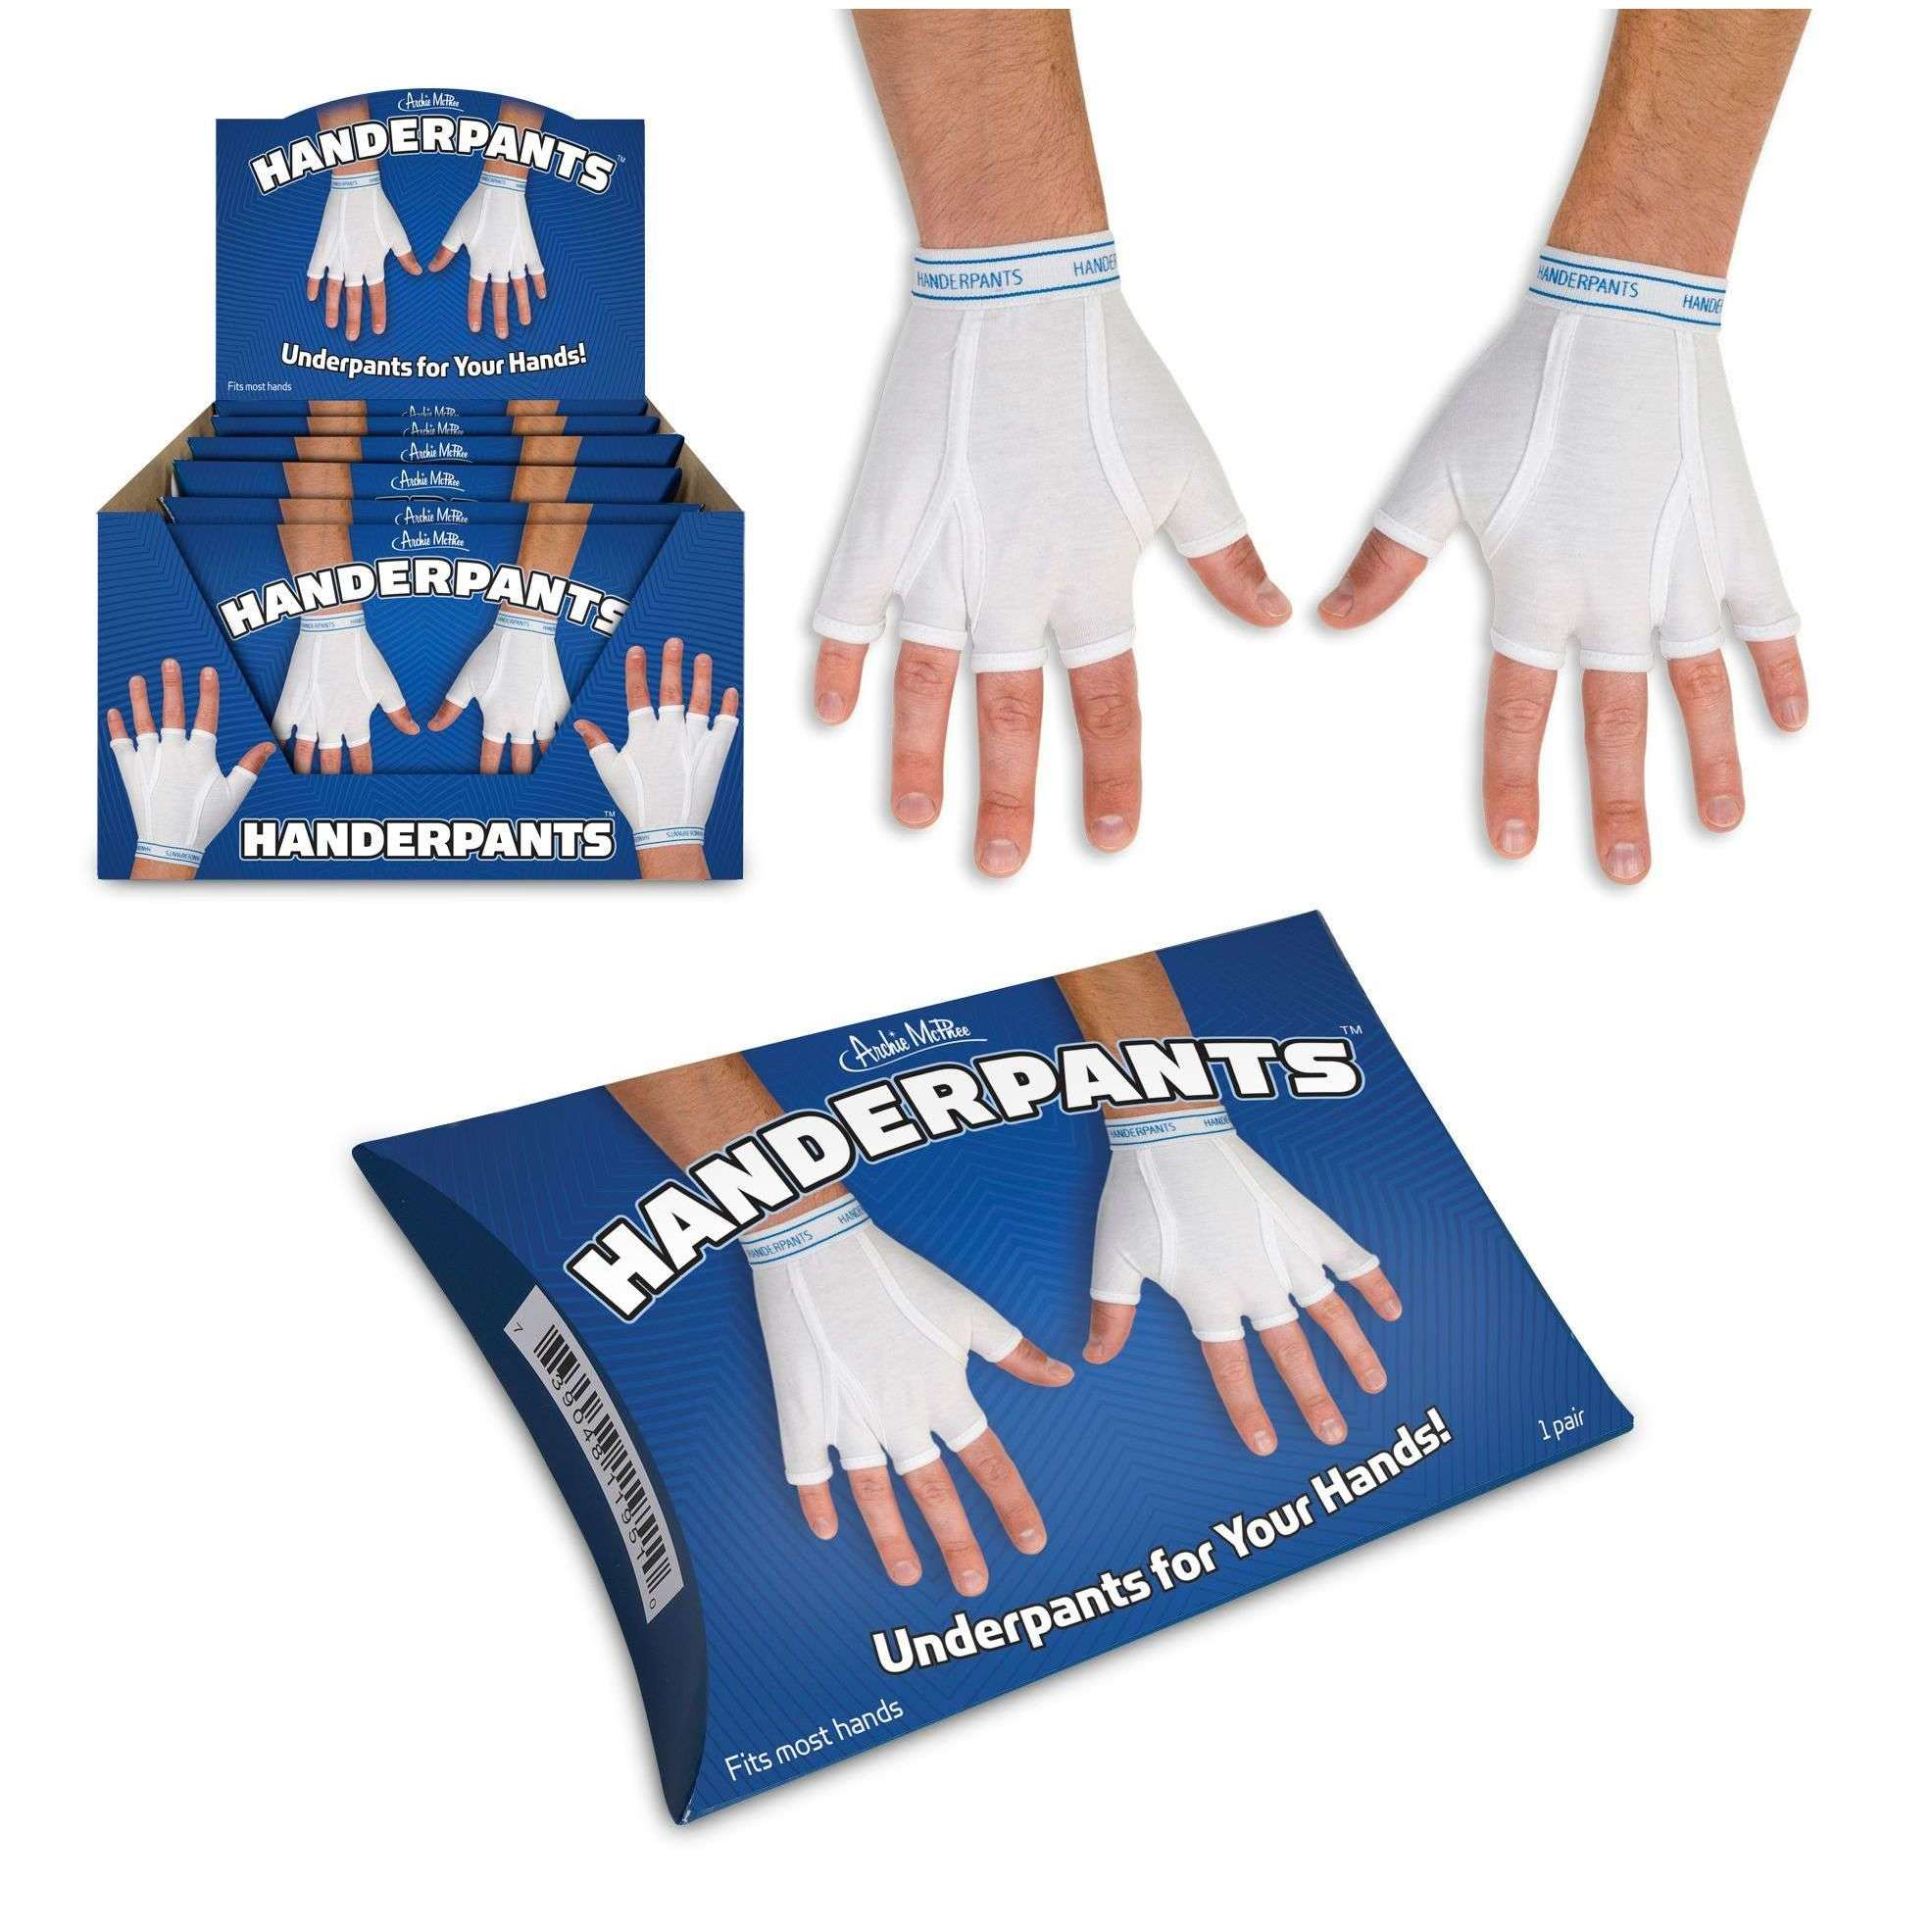 Handerpants Underpants For Your Hands